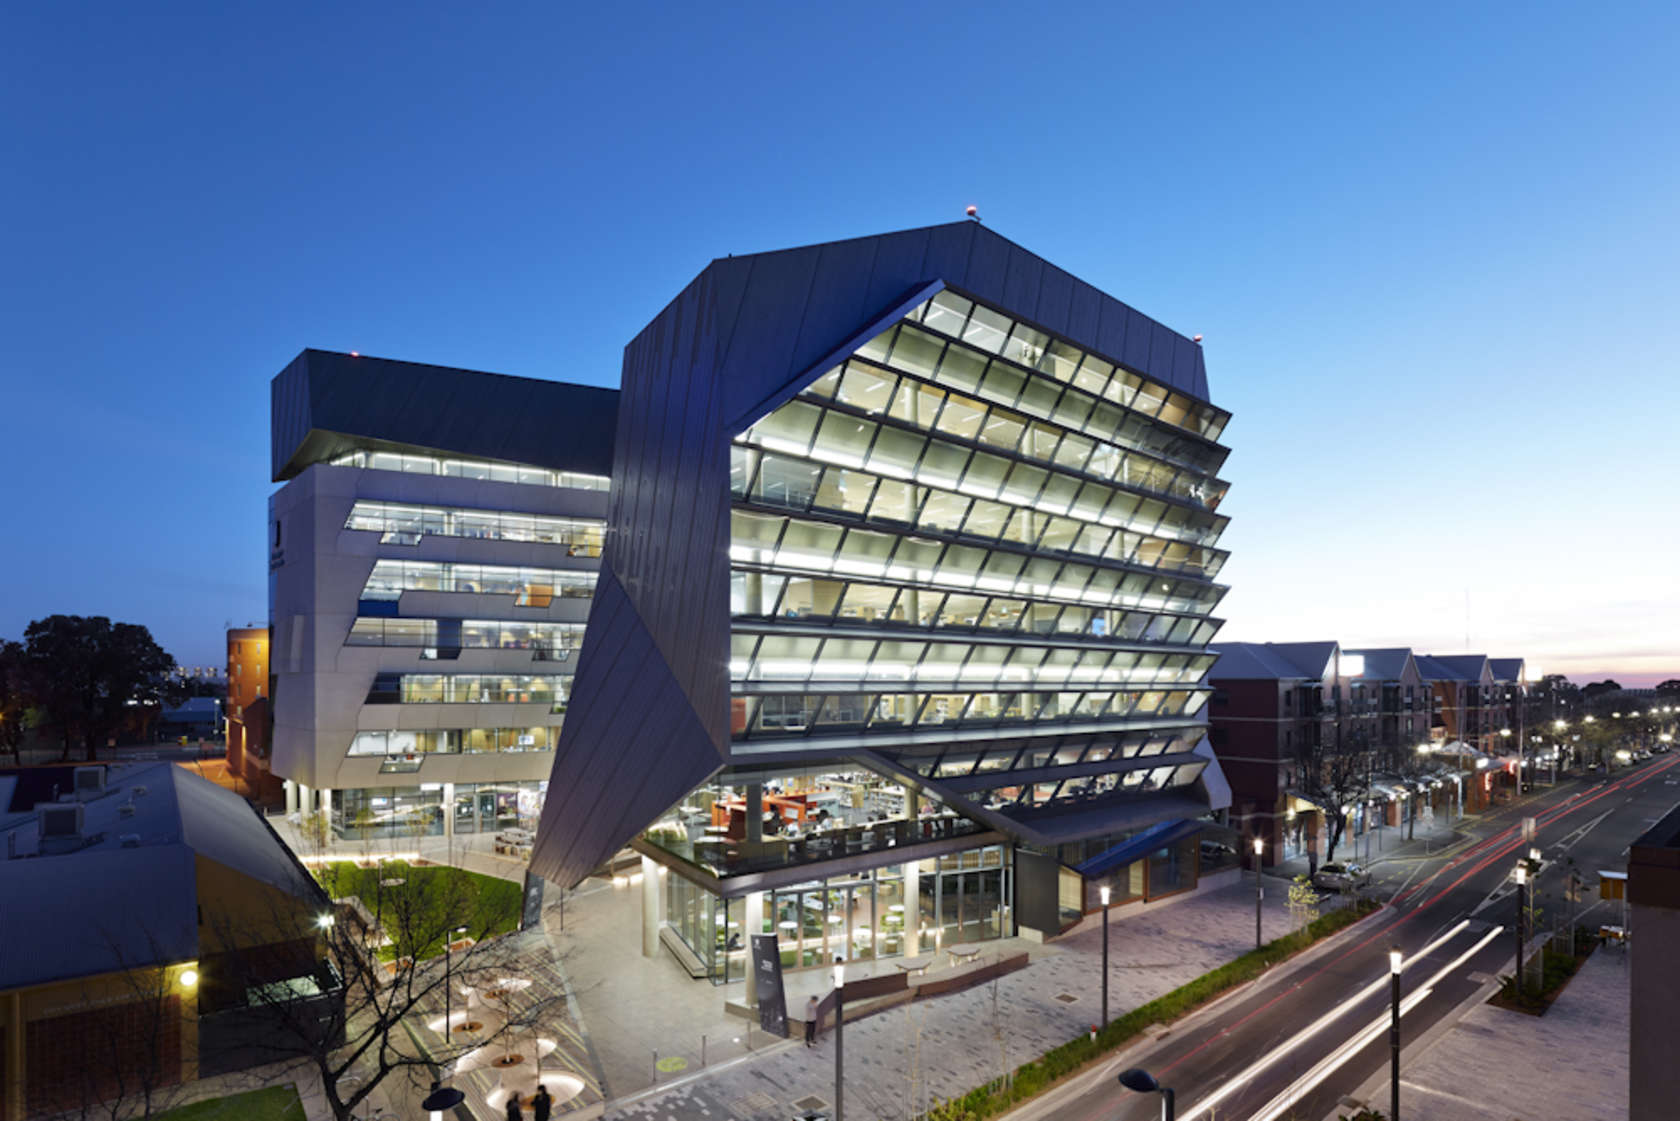 jeffrey smart building university of south australia